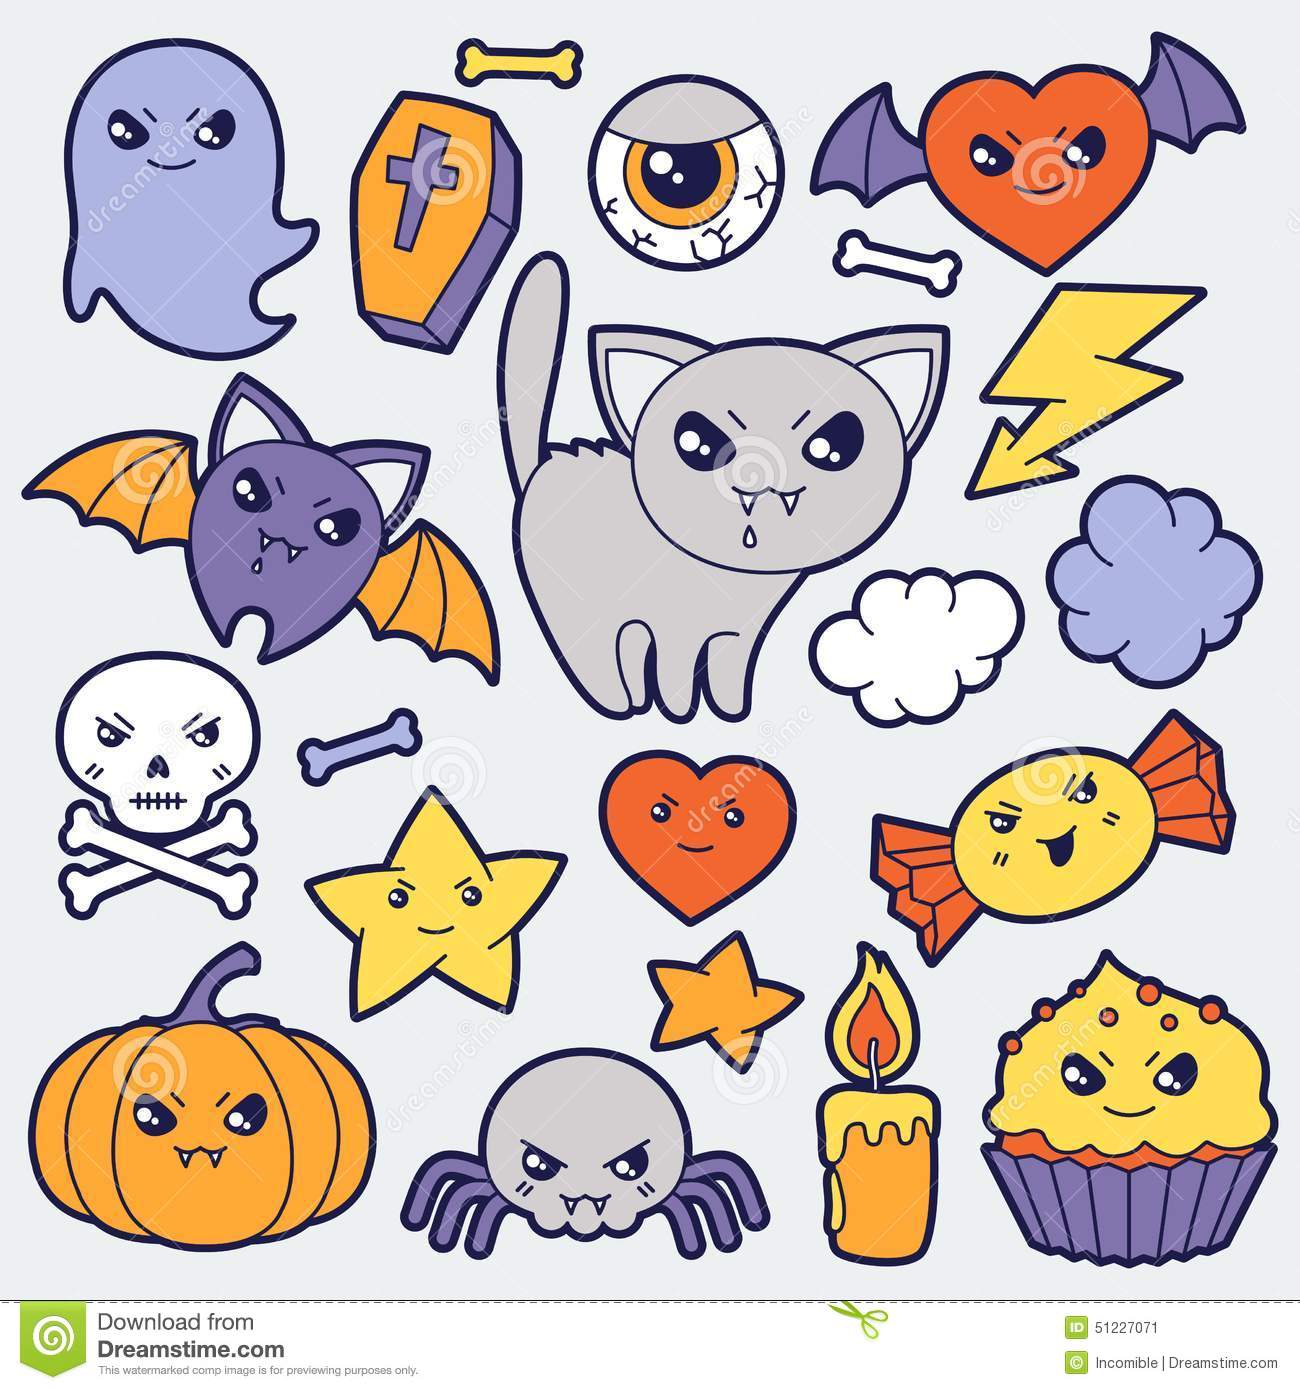 Cute Dog Doodle Wallpaper Set Of Halloween Kawaii Cute Doodles And Objects Stock